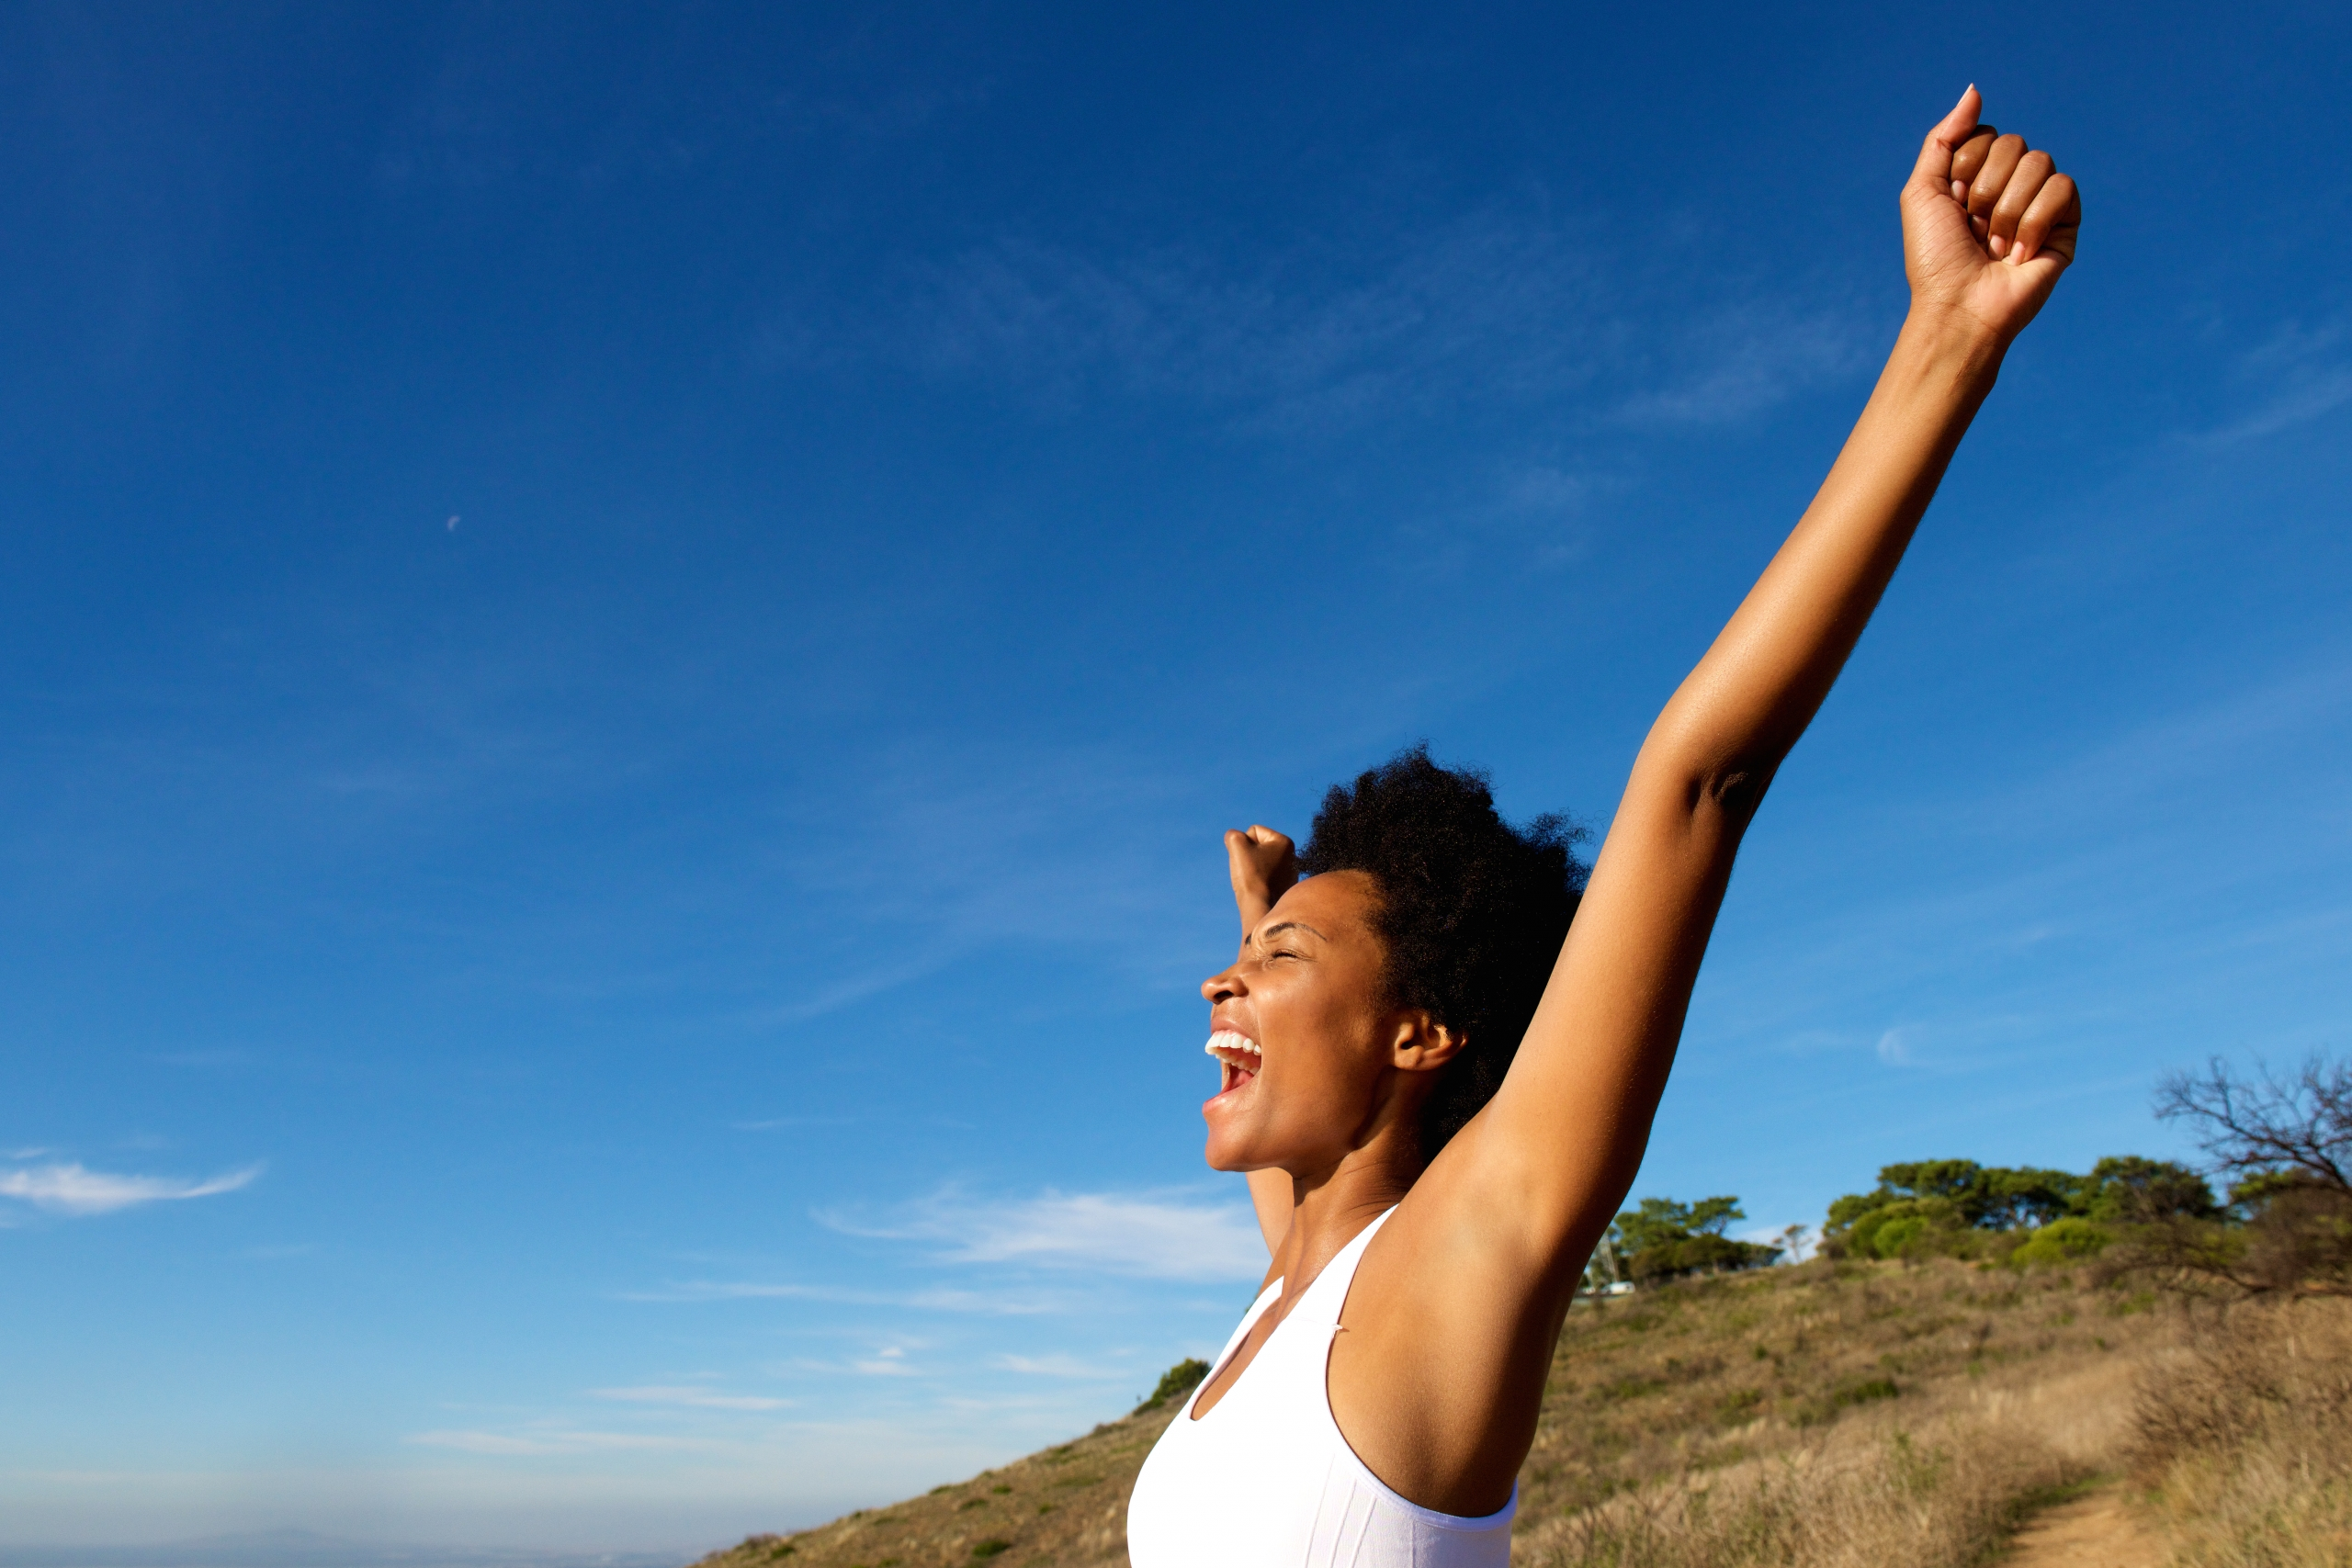 mindfulness letting go quesitions